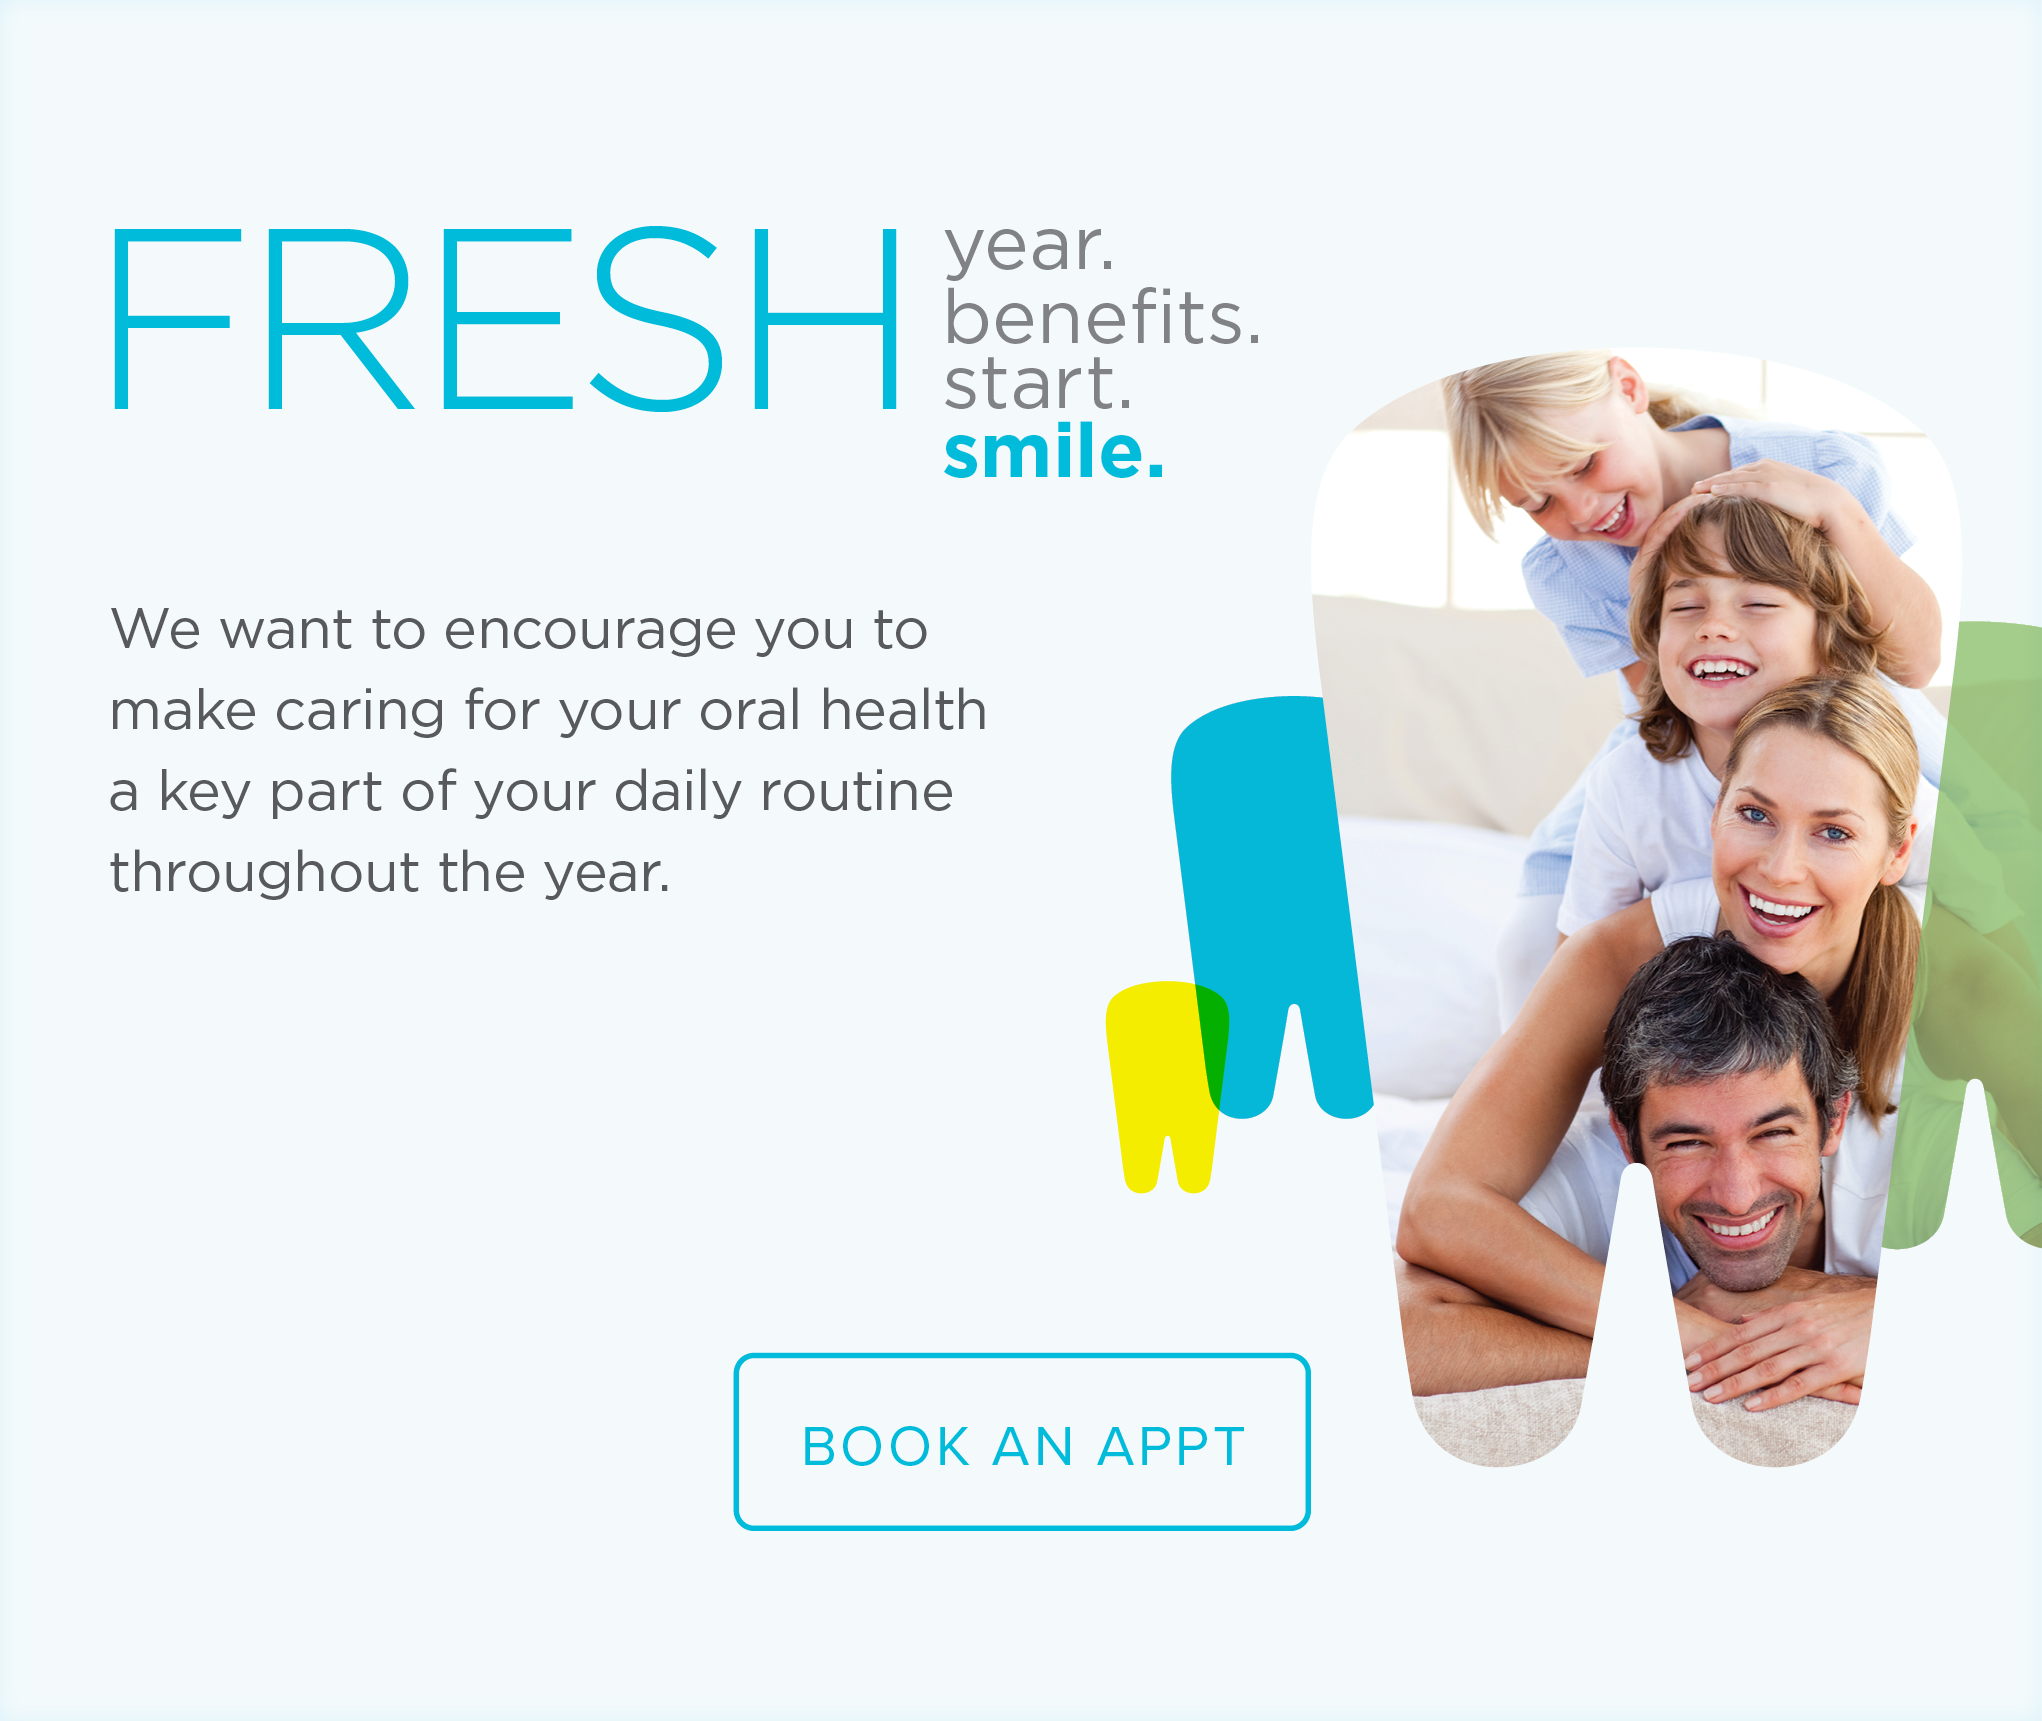 Miami Shores  Modern Dentistry - Make the Most of Your Benefits